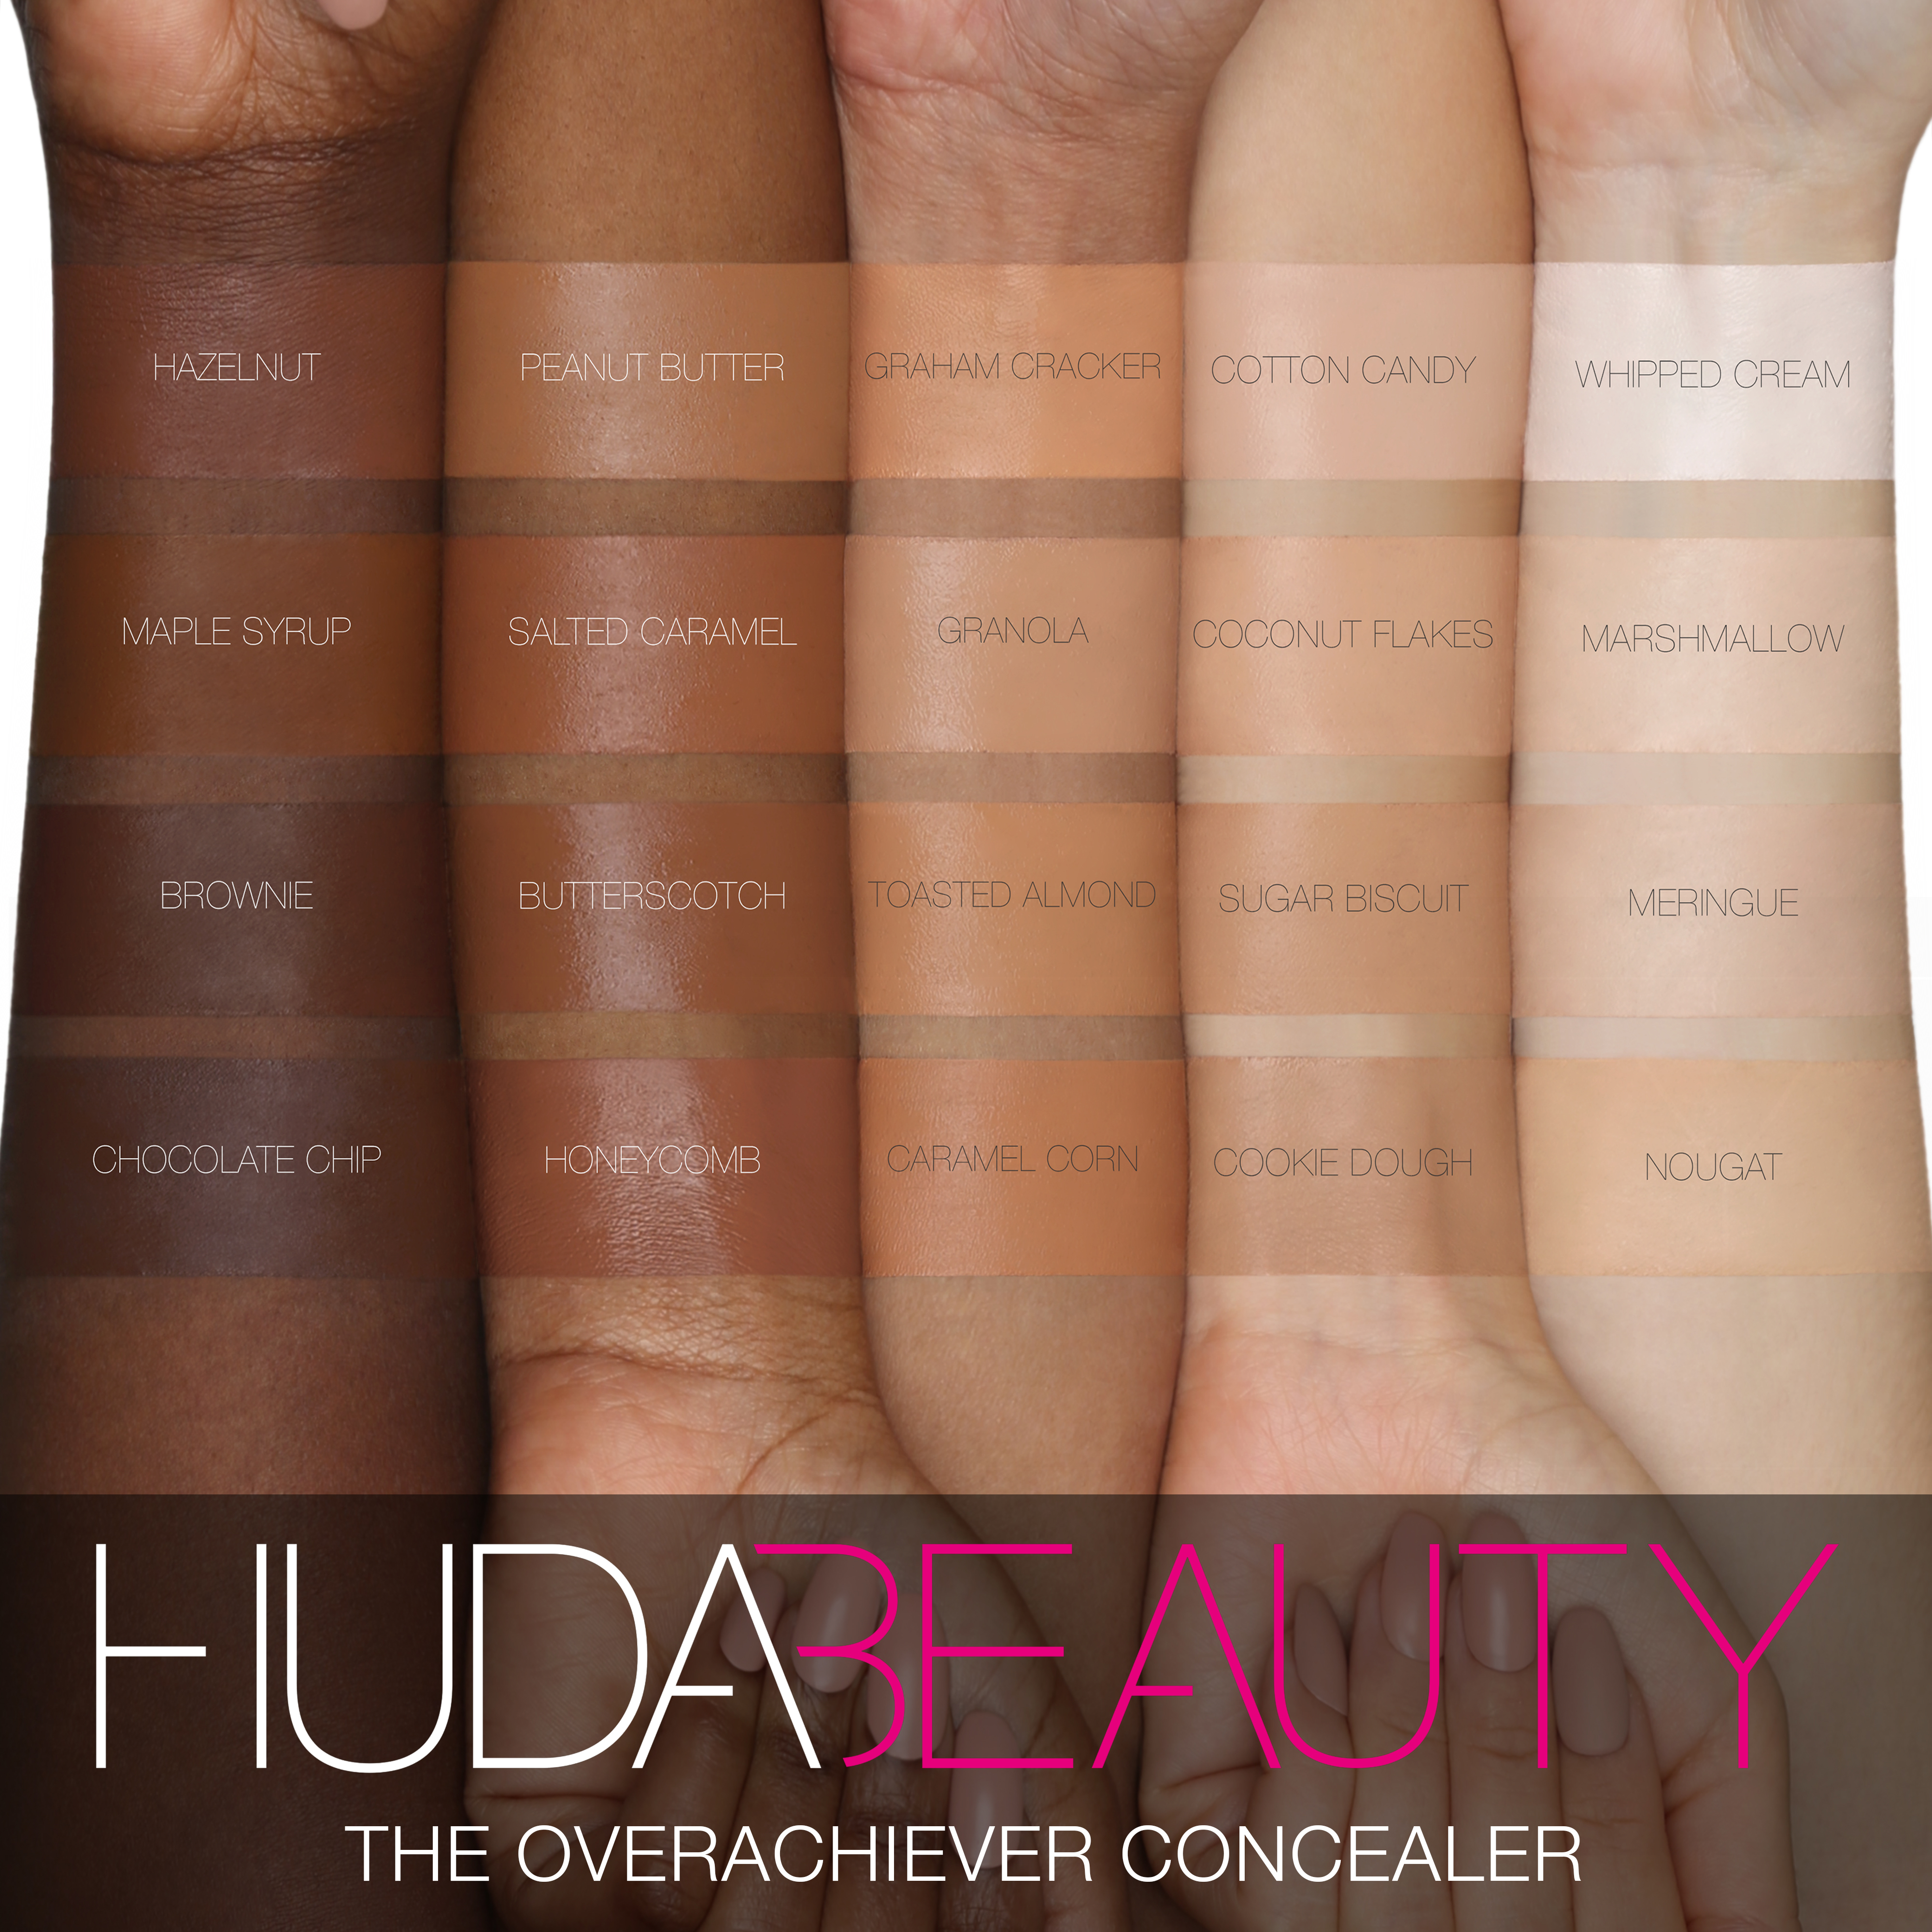 Huda Beauty  Products - Overachiever Concealer